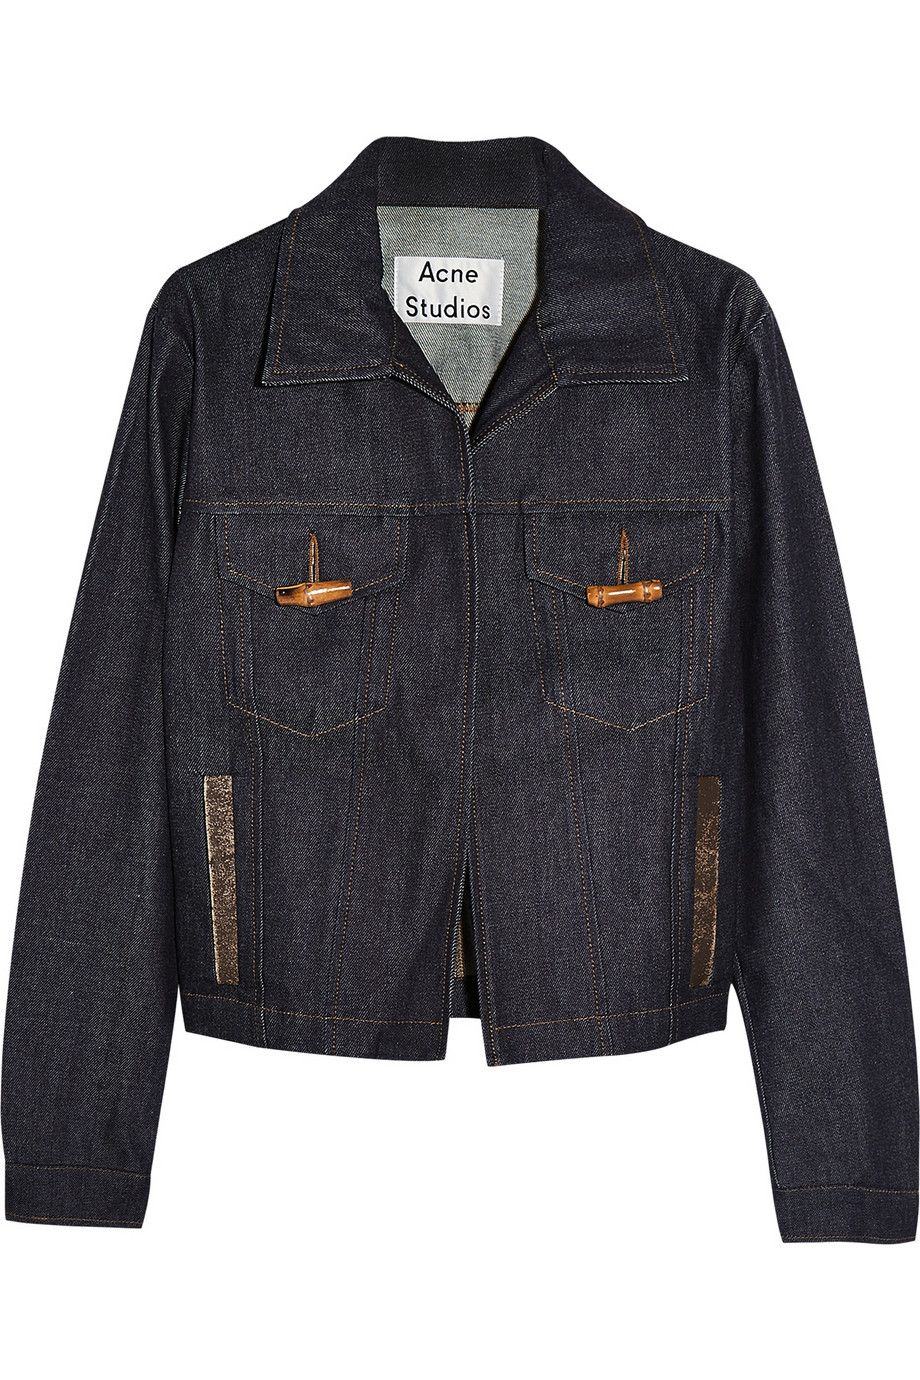 91b461854c0a Acne Studios   Veste en jean avec finitions en cuir North Raw   NET ...